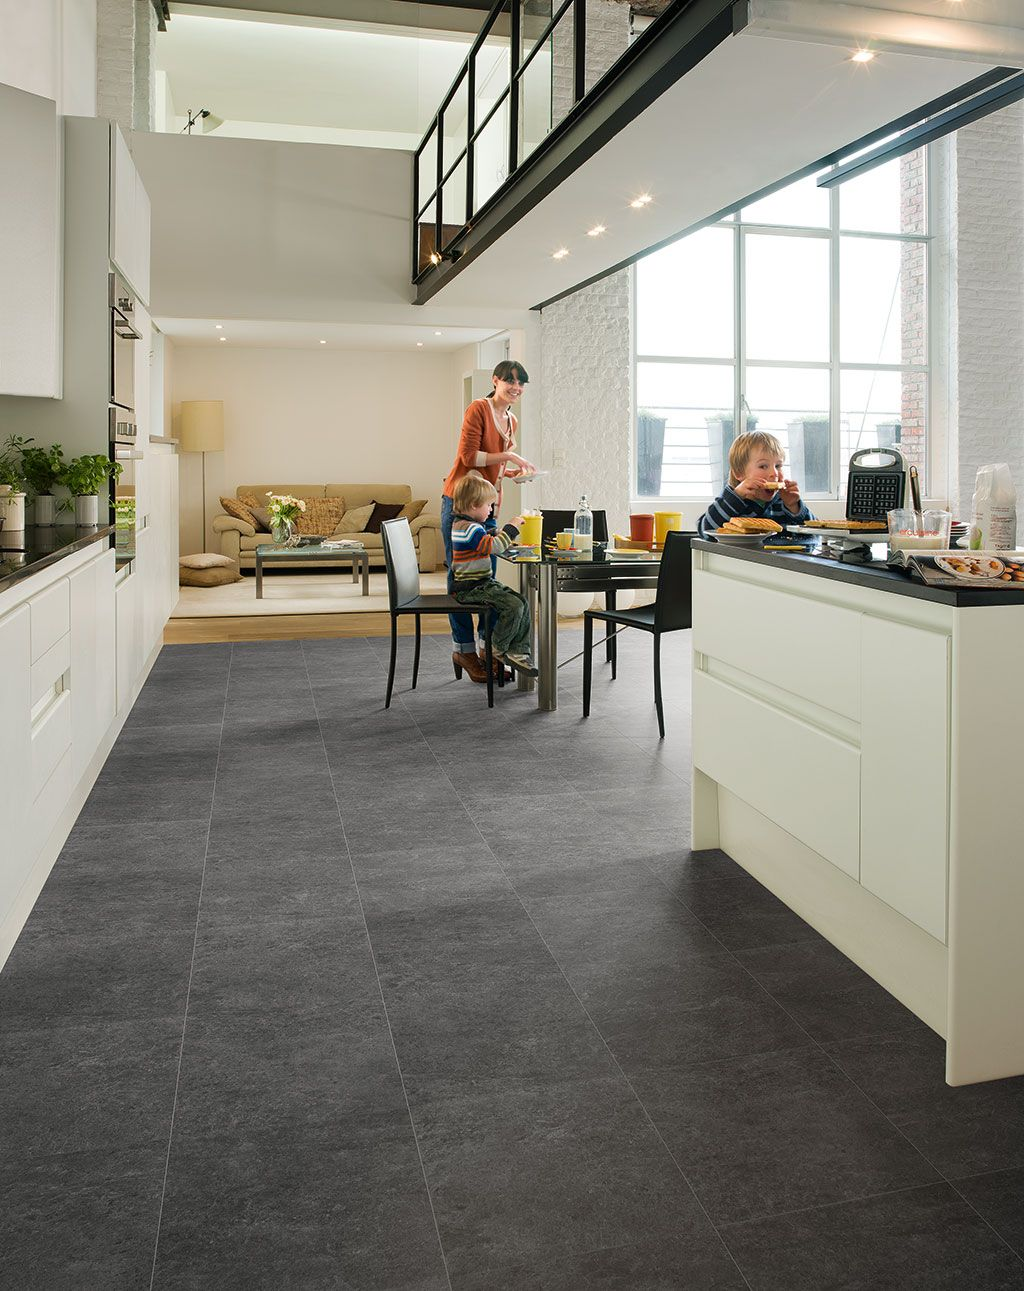 How to choose the perfect kitchen flooring Laminate tile